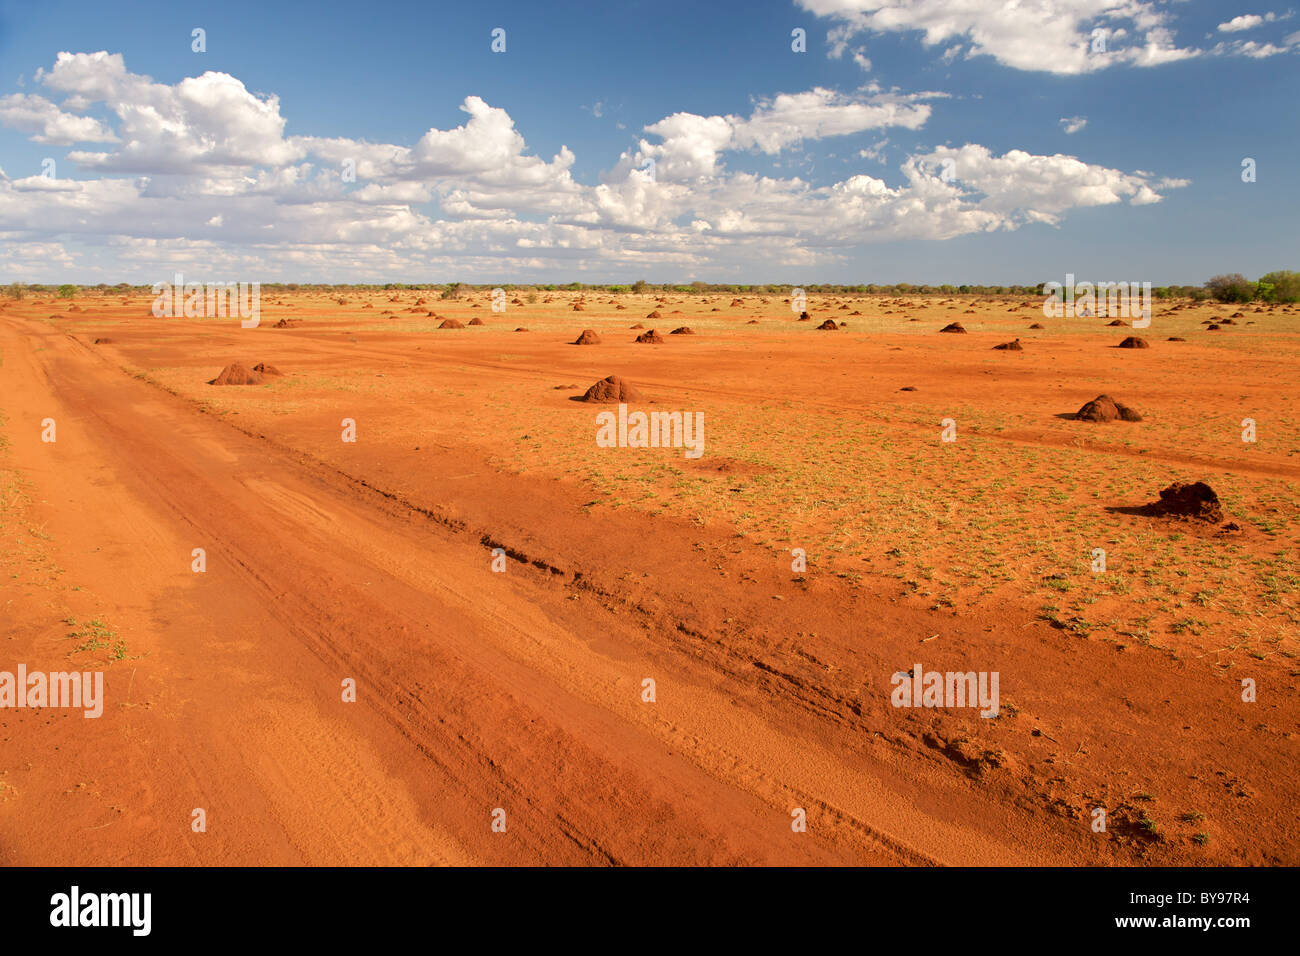 Barren, anthill-covered landscape in southwestern Madagascar on the road leading from Betioky to Tsimanampesotse - Stock Image